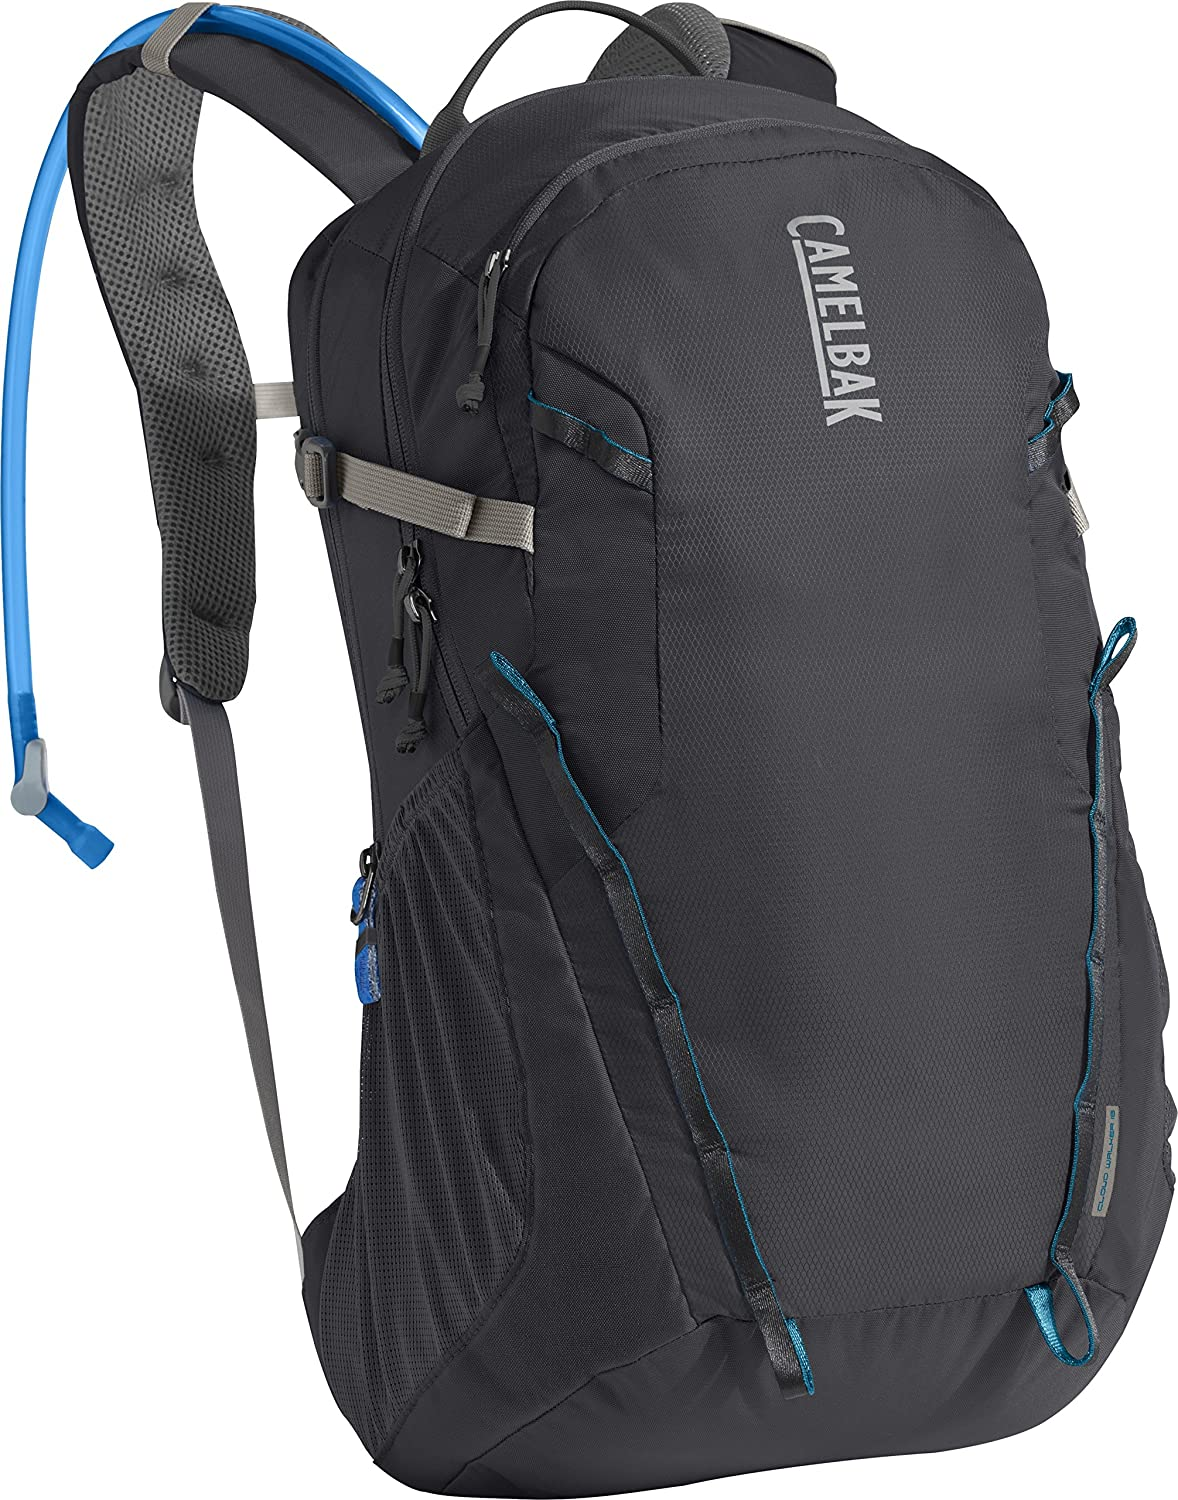 CamelBak Cloud Walker 18 Hydration Pack}